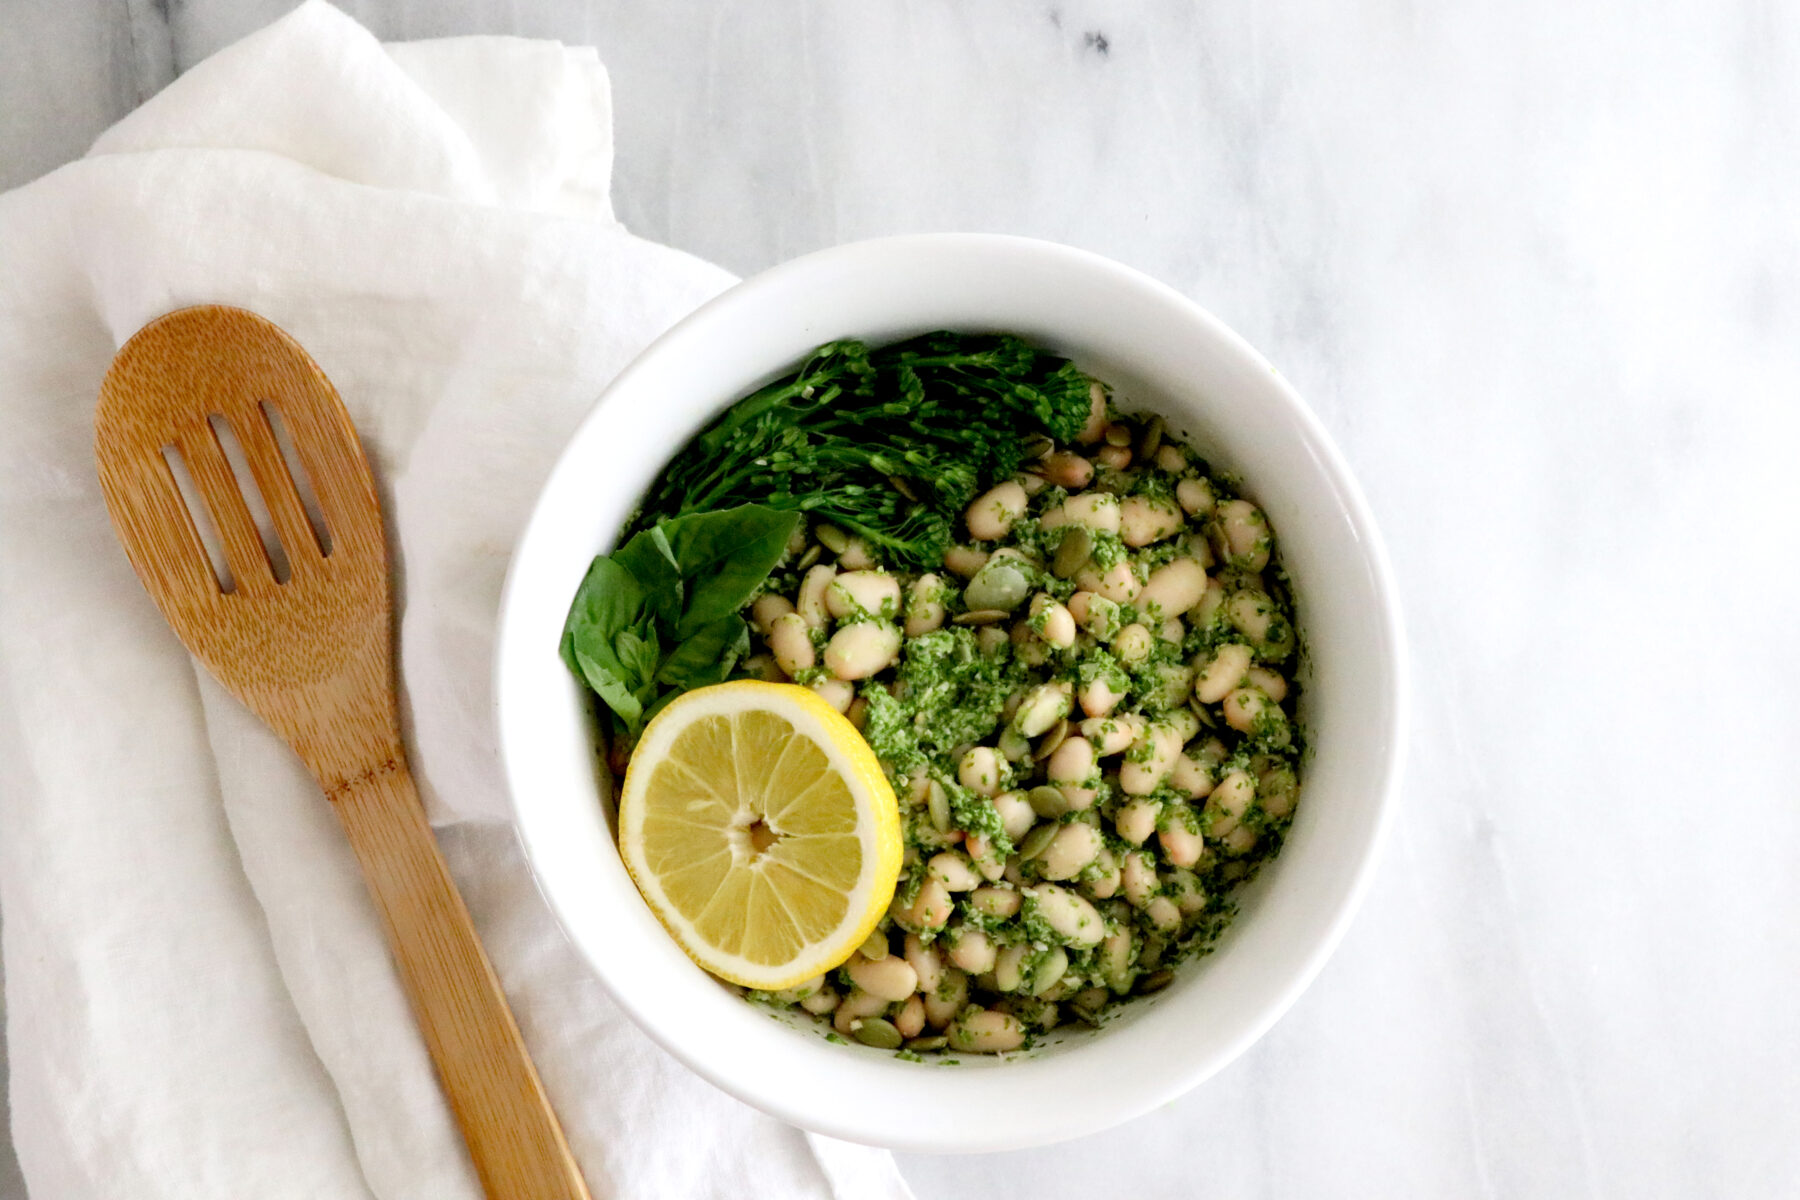 Bowl in center of photo filled with lemon broccolini pesto & beans. Spoon to the left of bowl on white napkin.